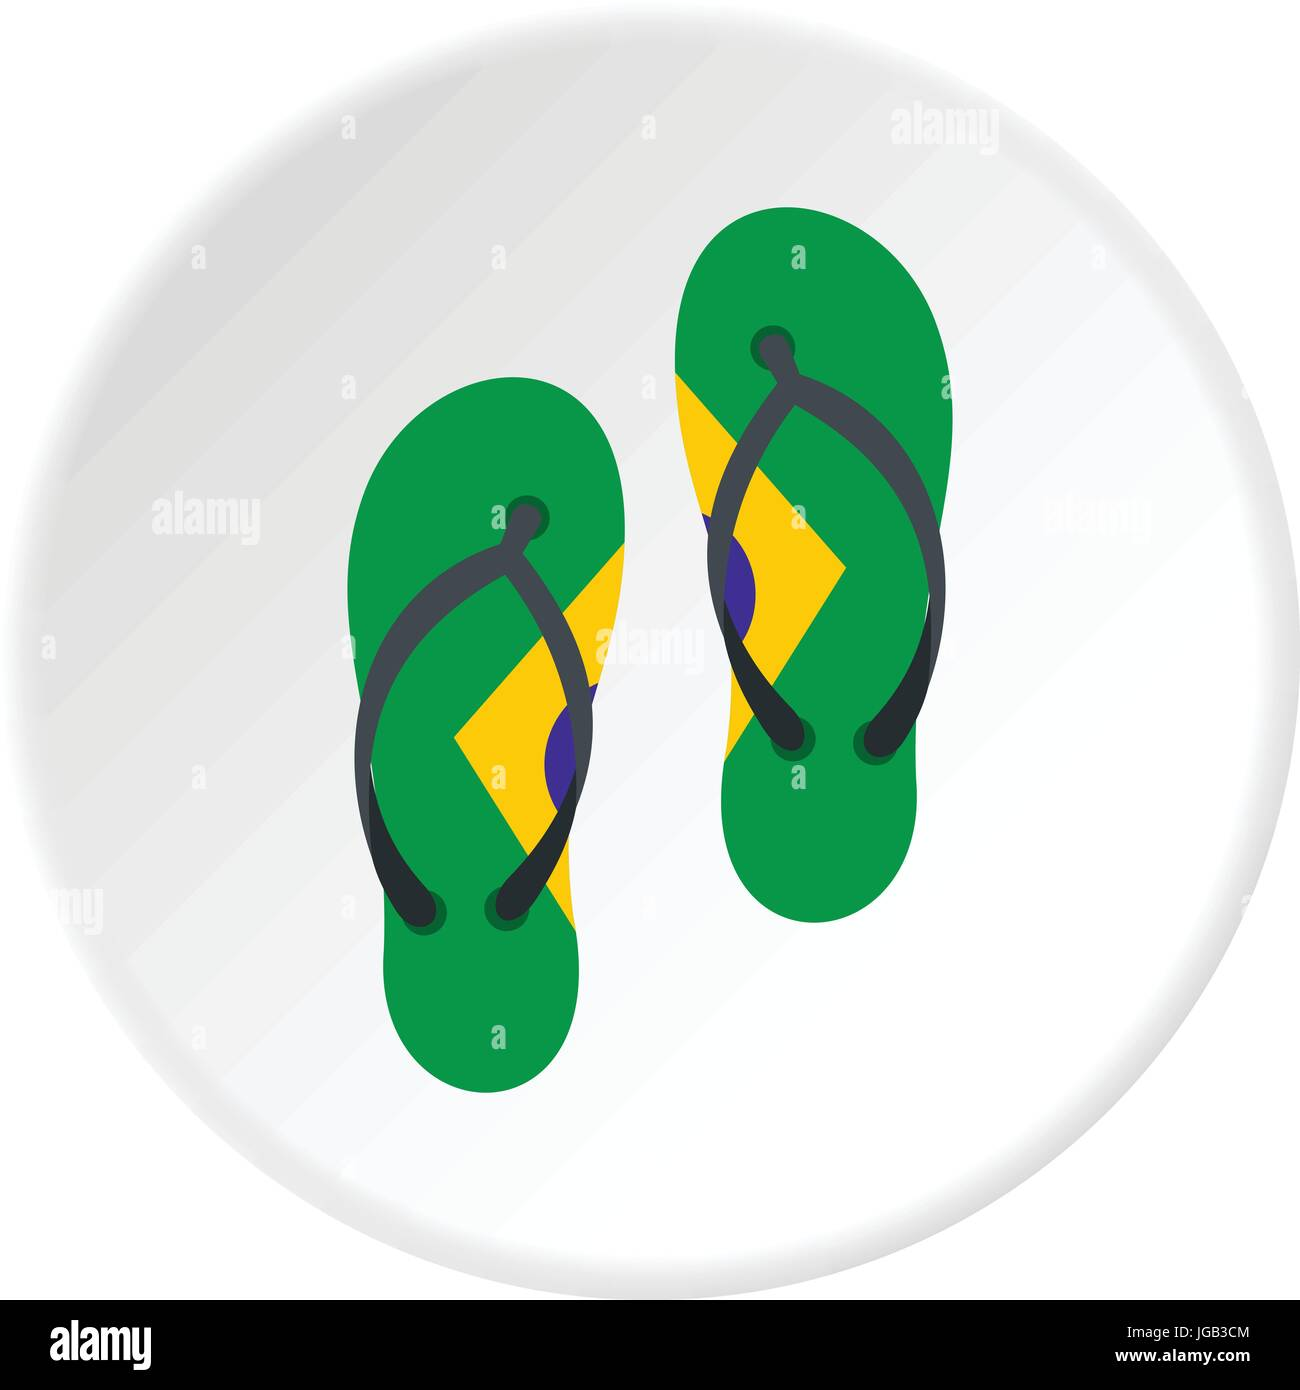 ba25792fb124 Flip flops in Brazil flag colors icon circle - Stock Vector